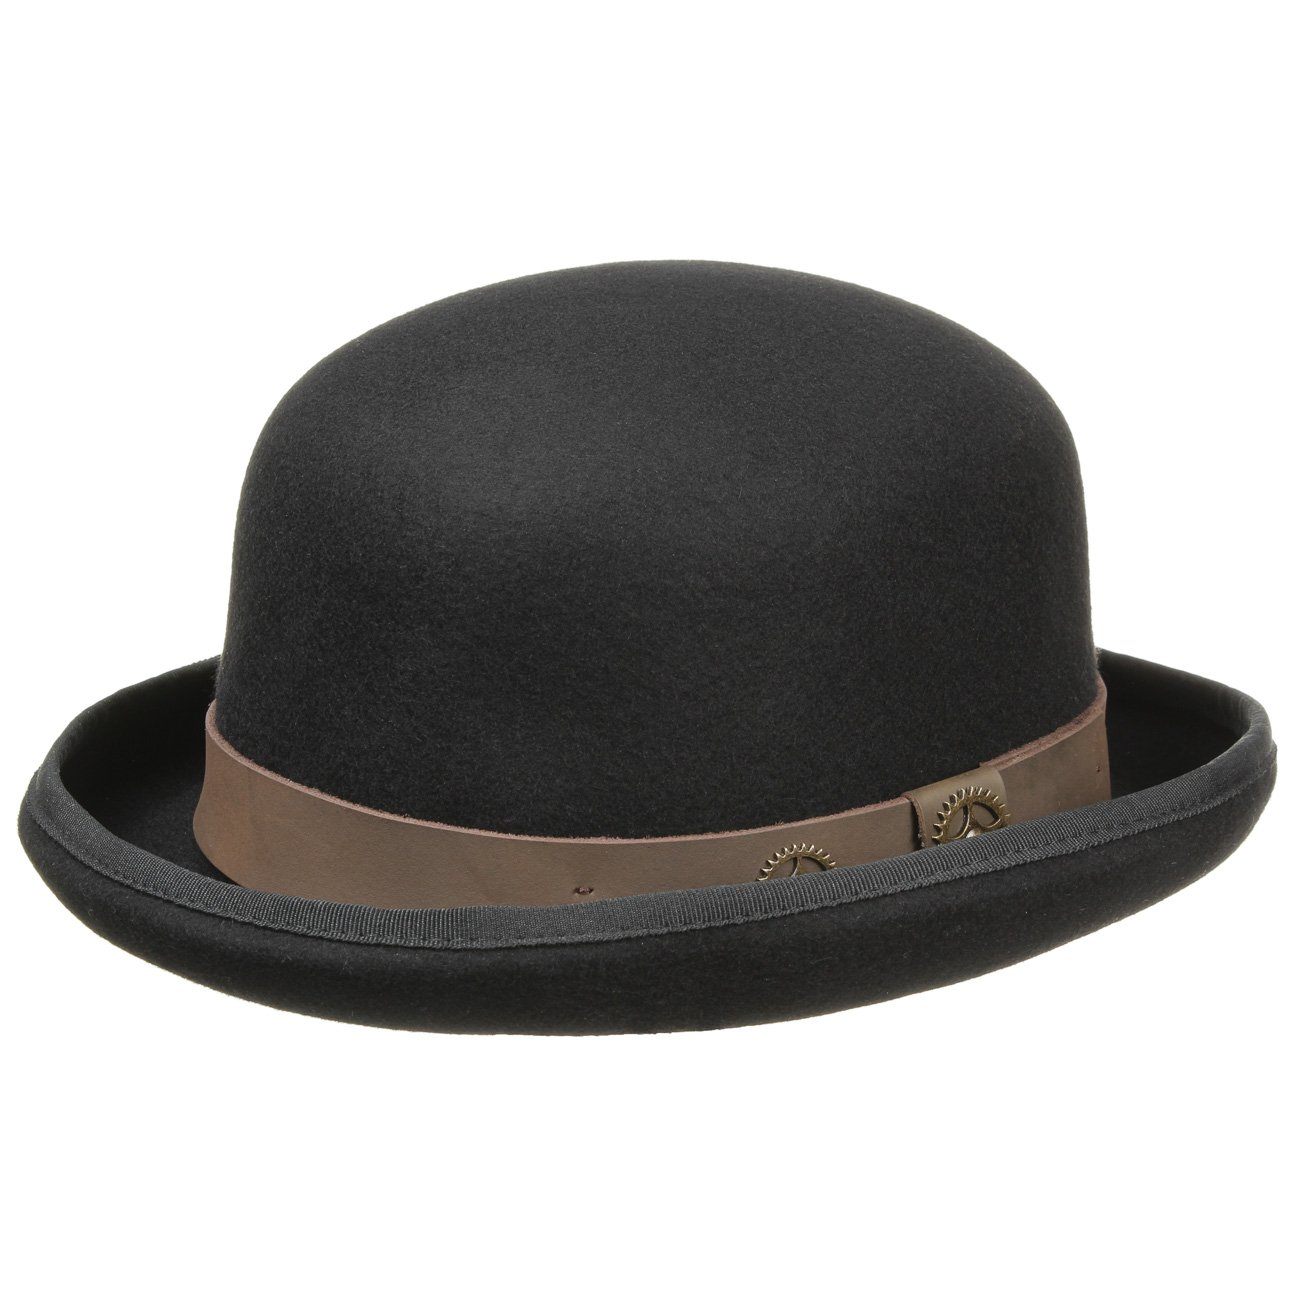 Conner Hats Mens Steampunk Bowler Hat